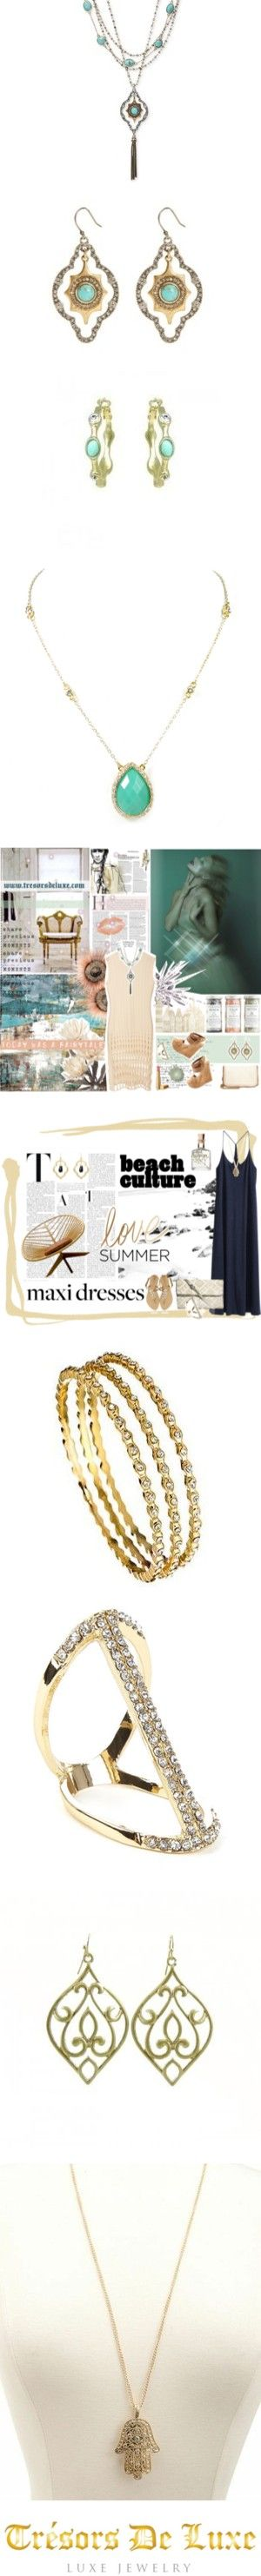 Gorgeous accessories inspired by love, life and the most current on trend looks! See our looks on the Red Carpet this Award Season 2016!   {Trend} GOLD RUSH by tresorsdeluxe on Polyvore featuring women's fashion, jewelry, earrings, sparkle jewelry, C. Jeré, xO Design, Derek Lam, STELLA McCARTNEY, Too Faced Cosmetics and Charlotte Russe